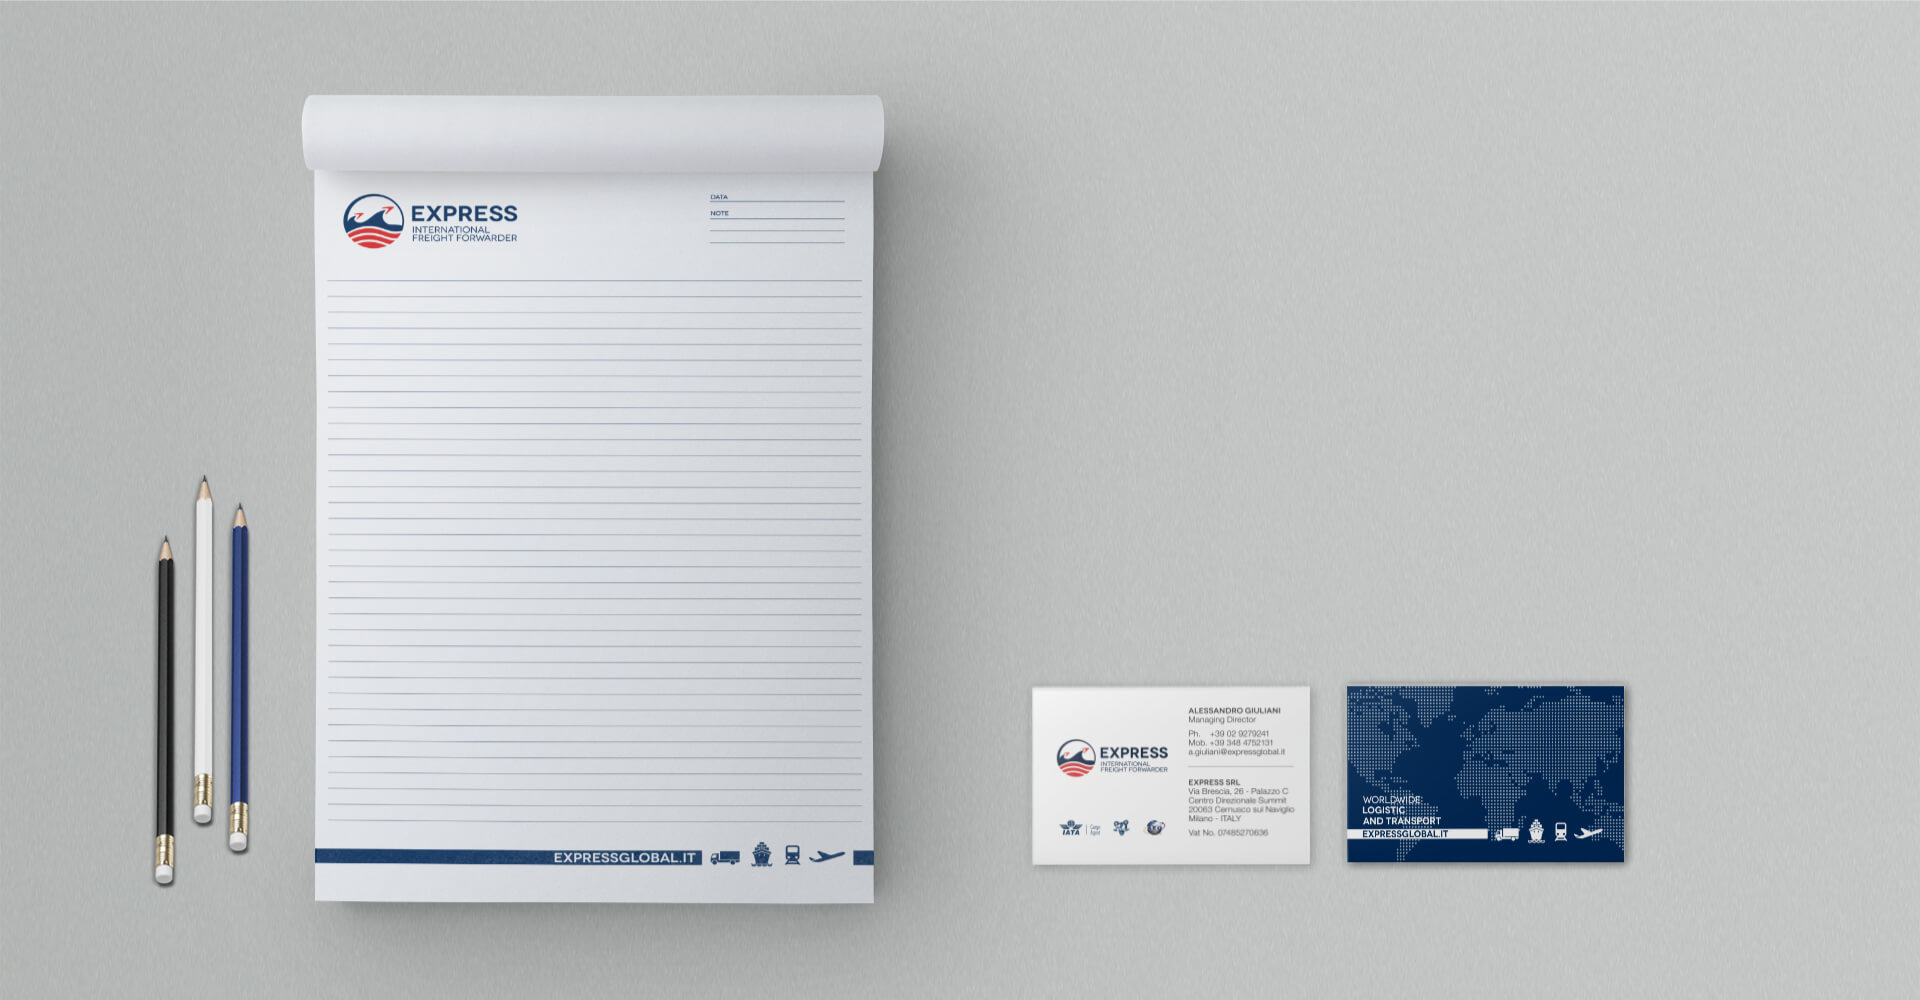 express-brand-identity-blocco-visitcard